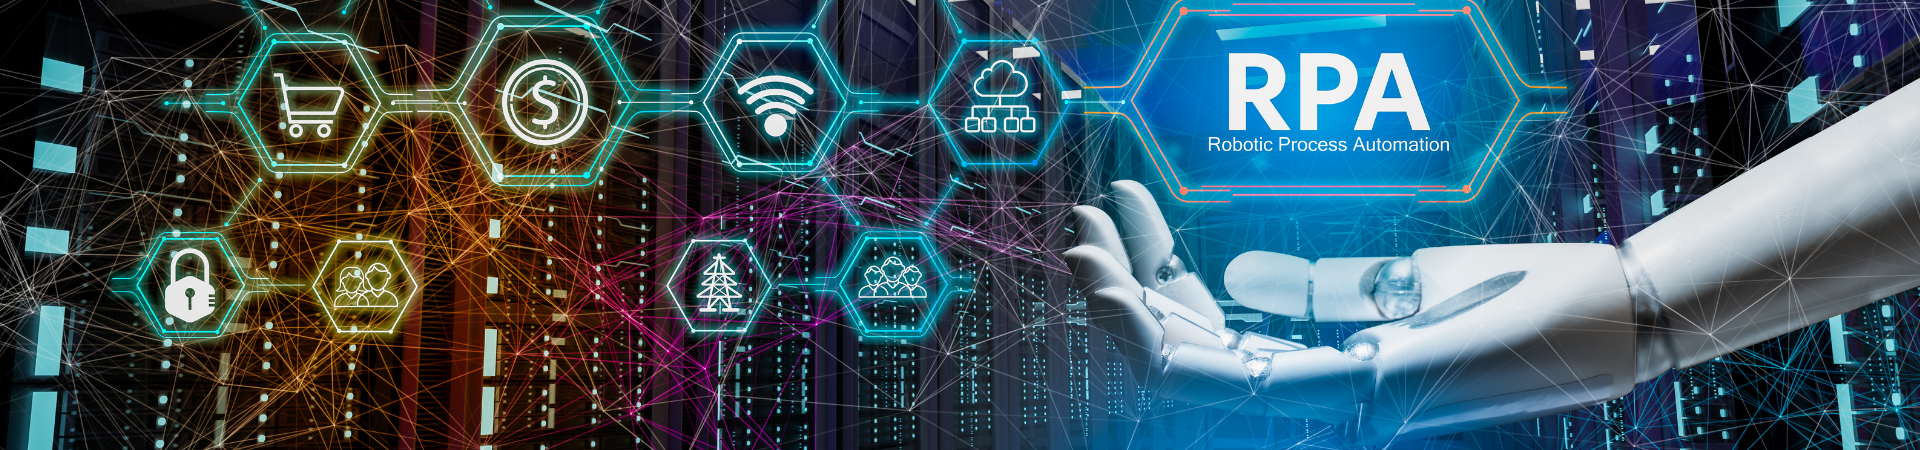 Data Transformation and RPA: How to Streamline Your Data Process